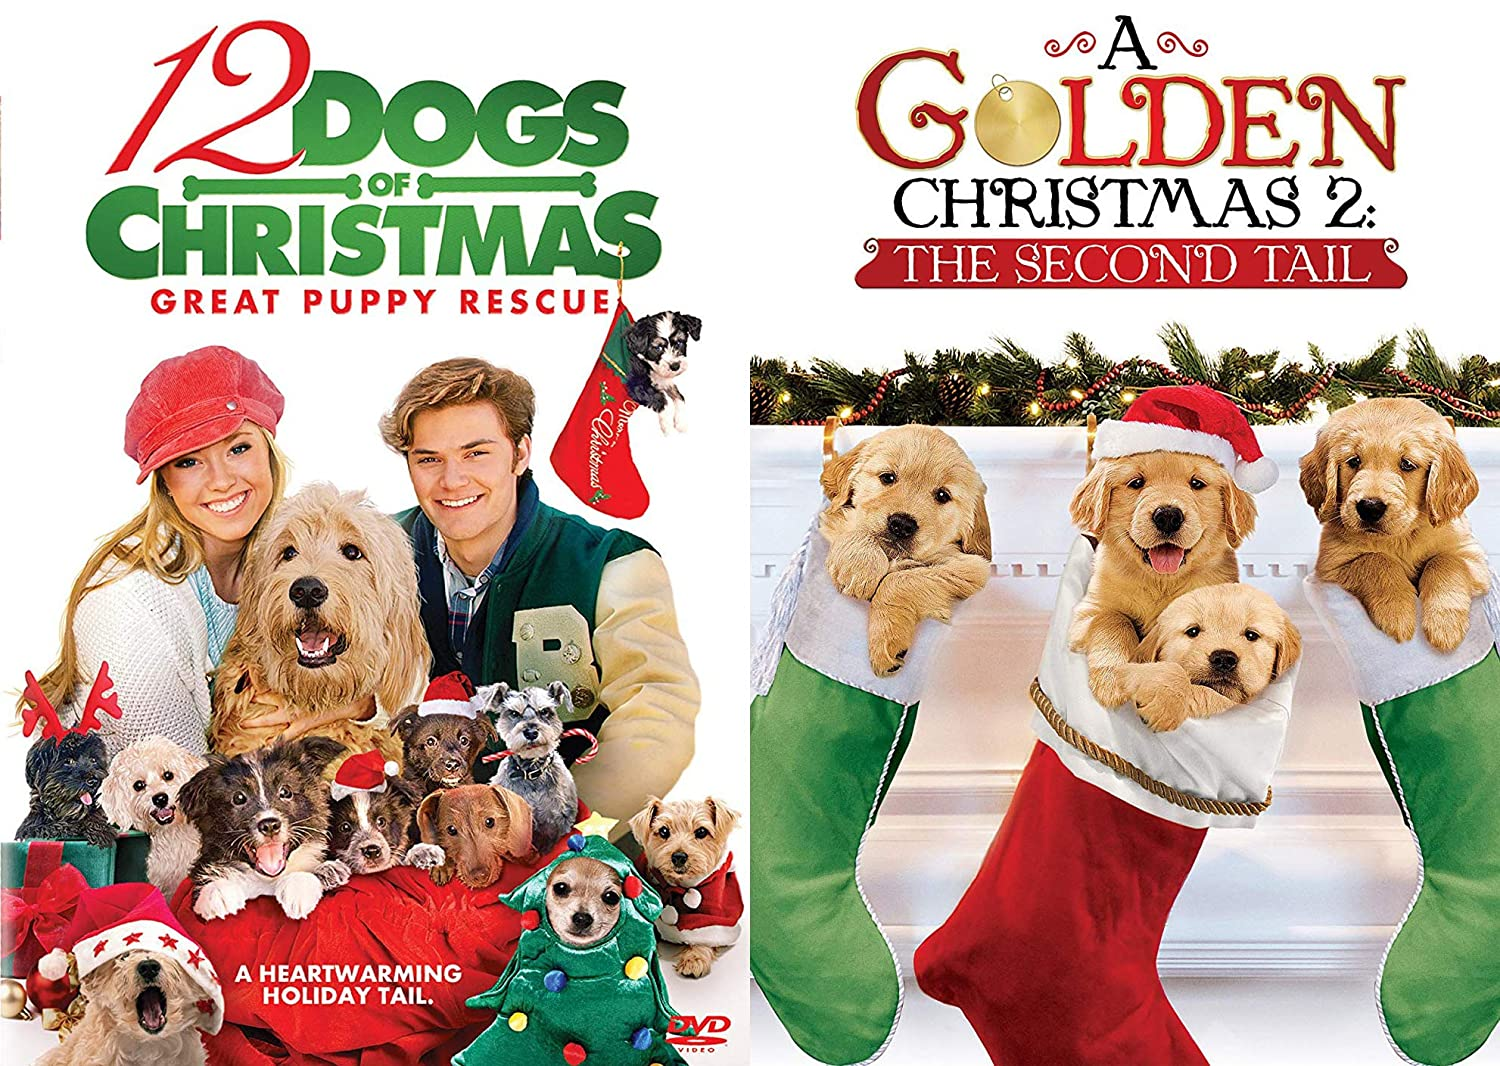 12 Dogs Of Christmas.Amazon Com Everyone Loves Christmas Especially Dogs 2